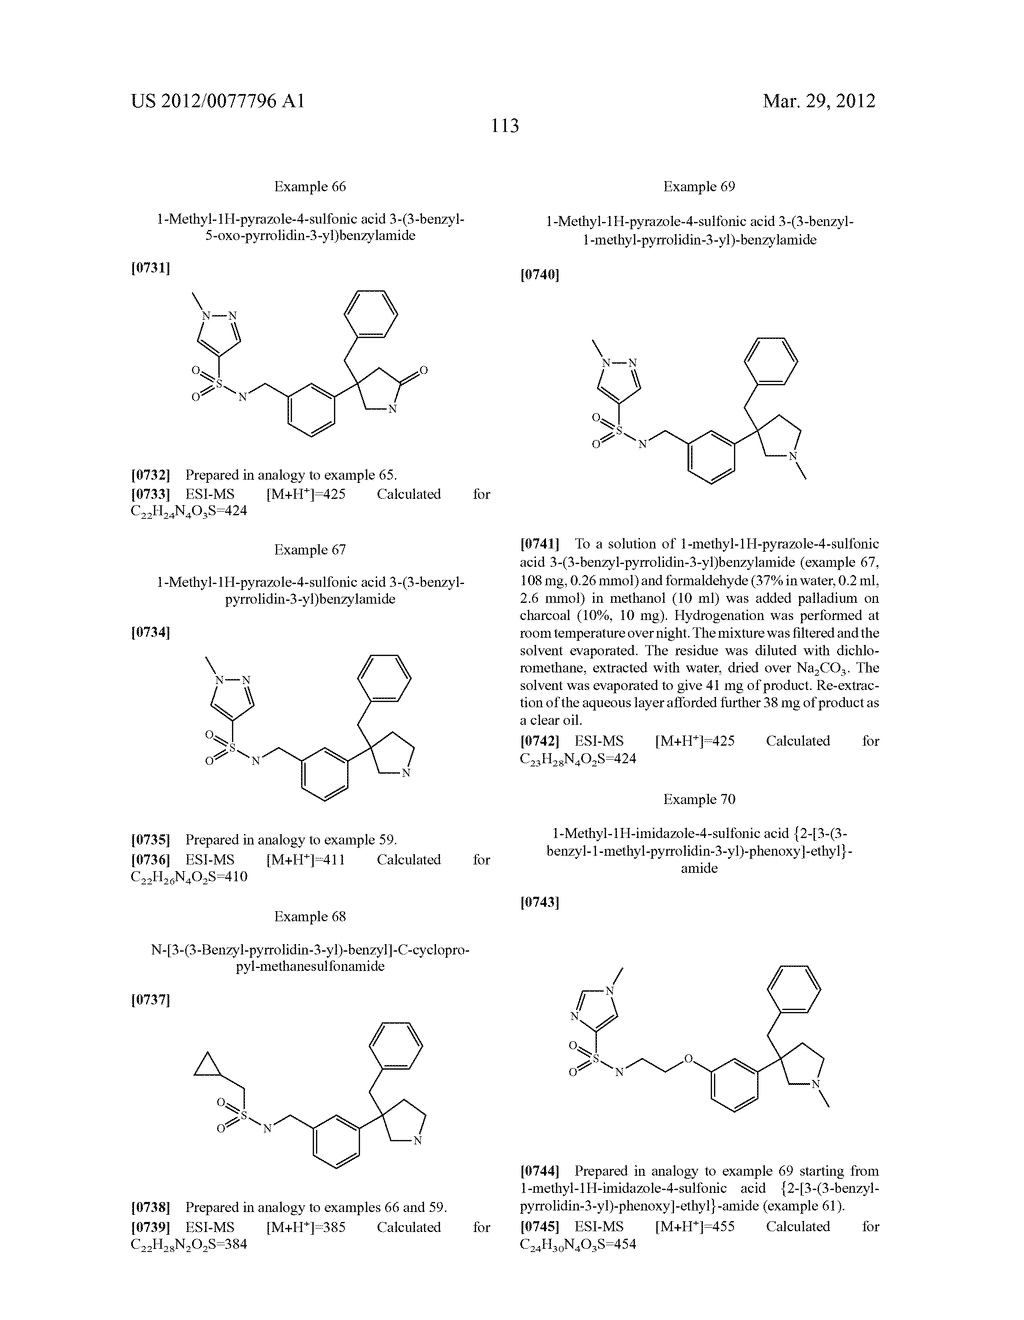 PHENALKYLAMINE DERIVATIVES, PHARMACEUTICAL COMPOSITIONS CONTAINING THEM,     AND THEIR USE IN THERAPY - diagram, schematic, and image 114